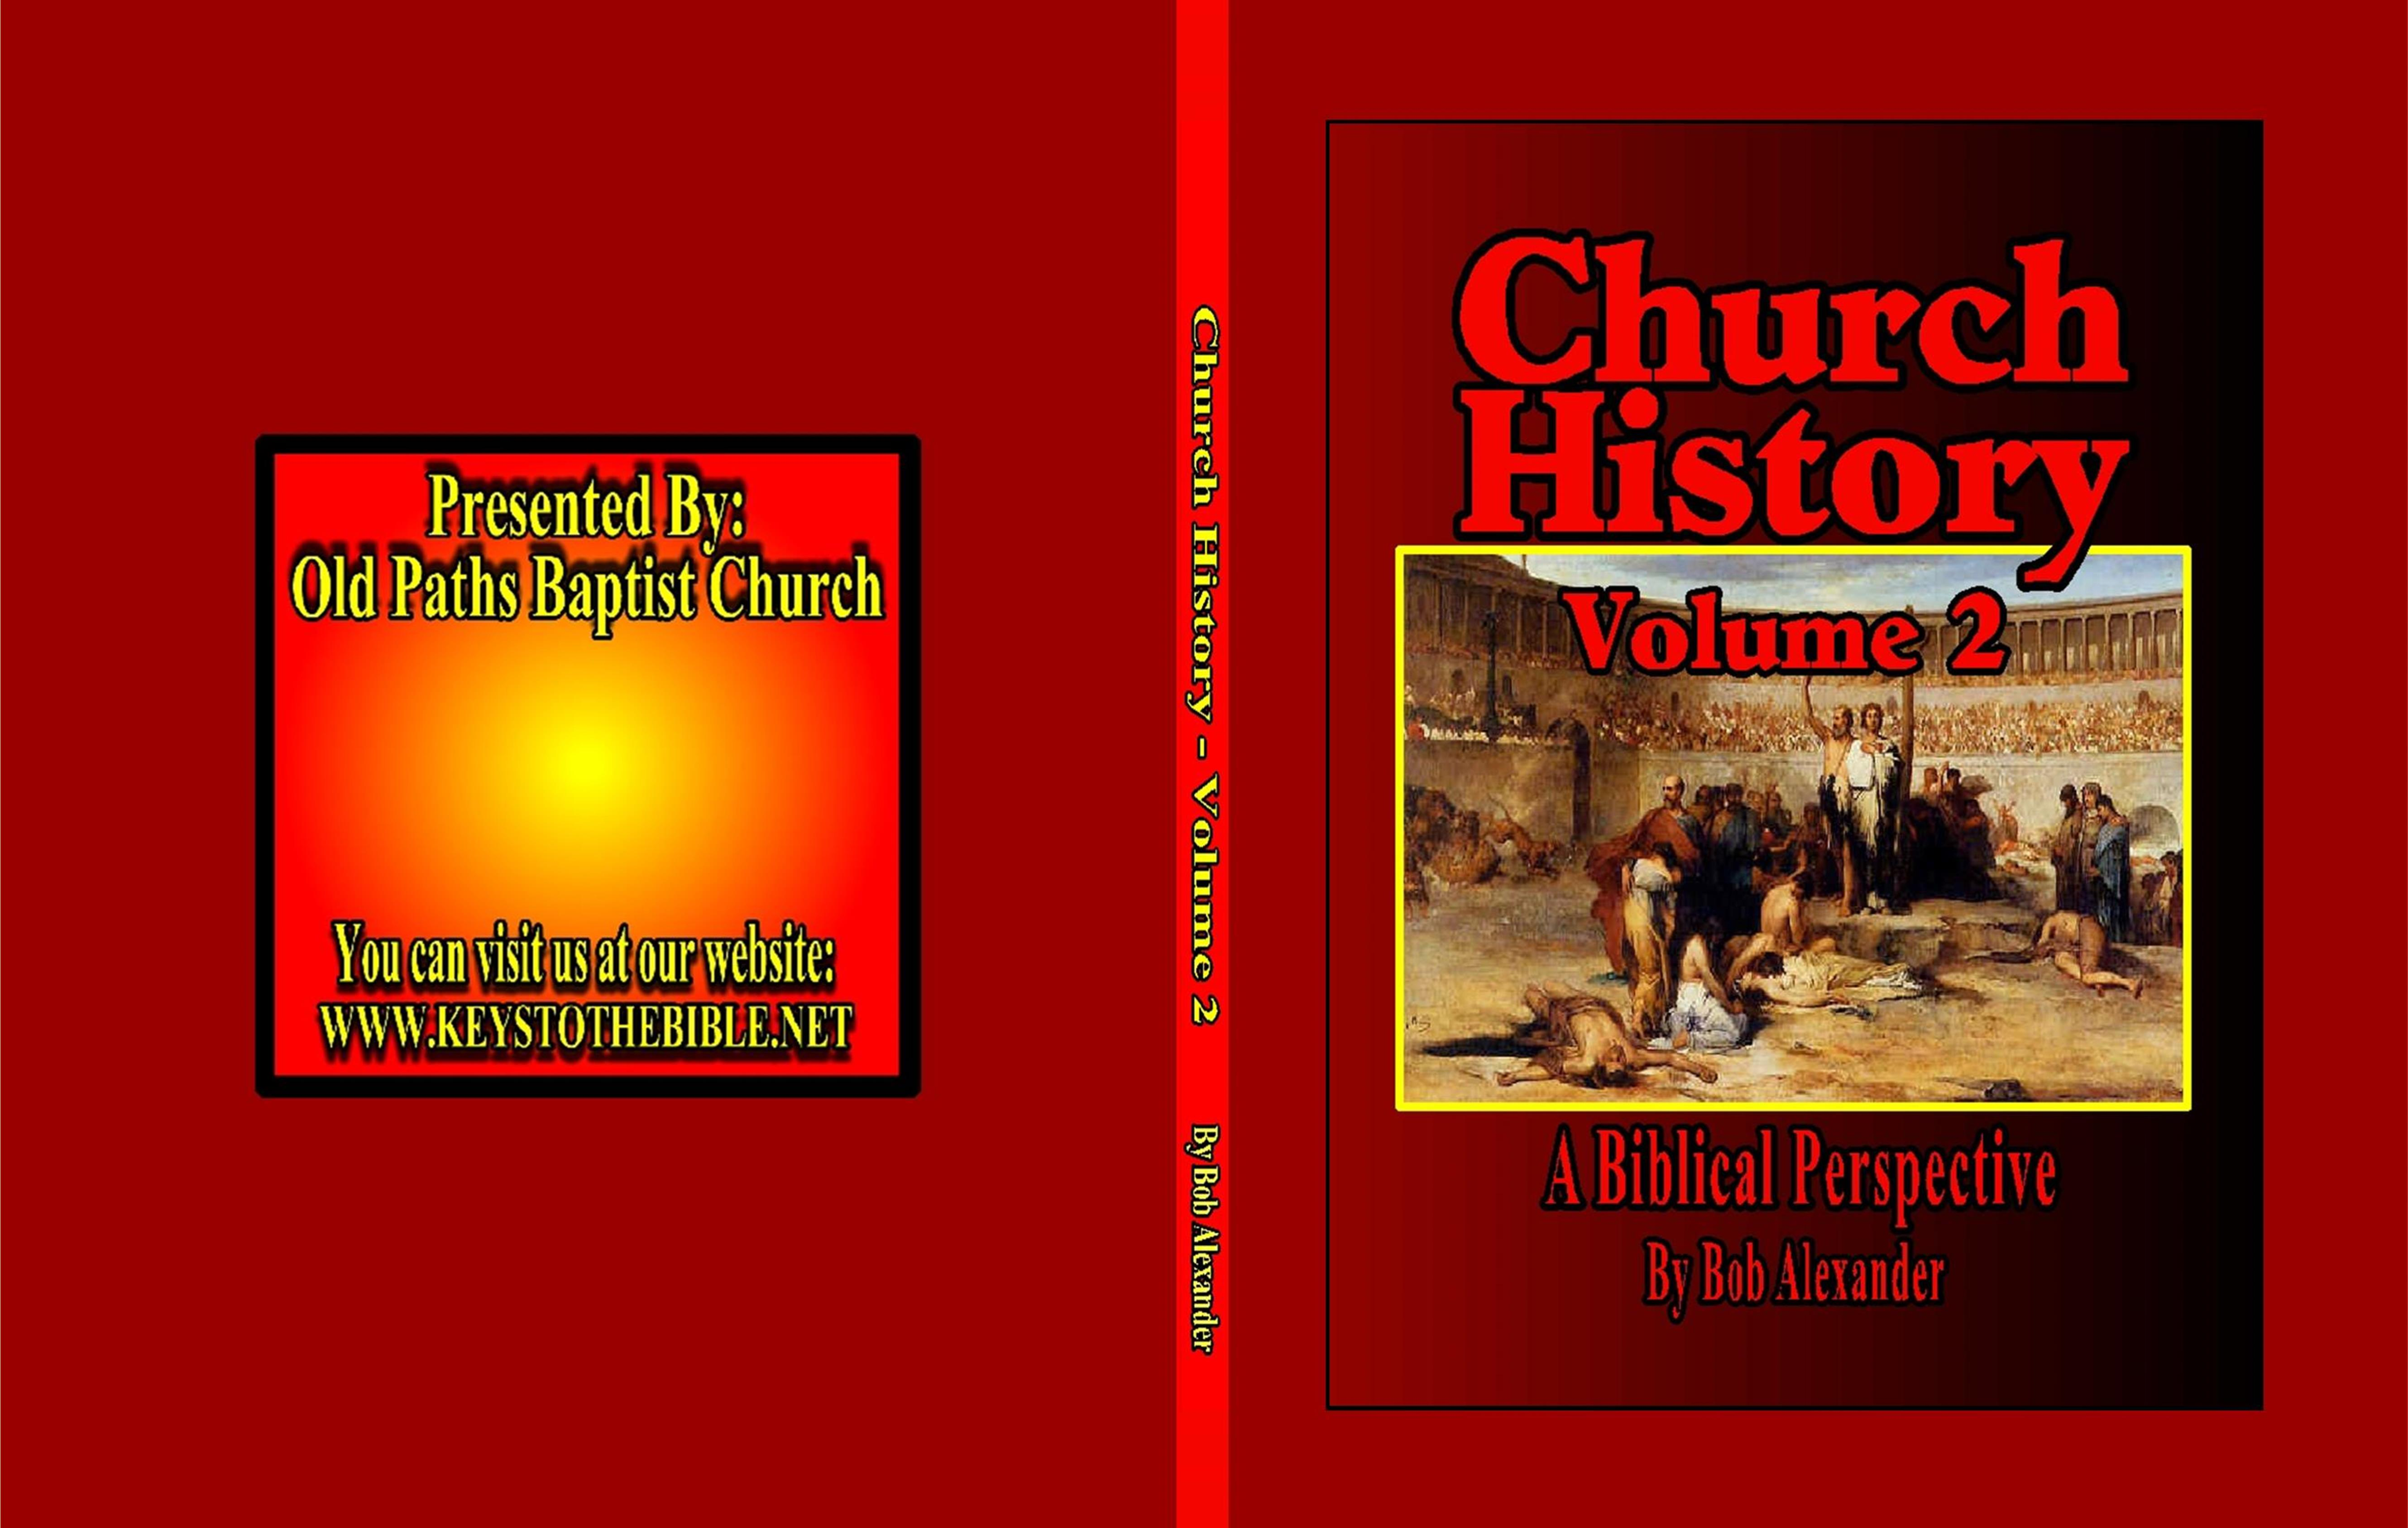 Church History - Volume 2 cover image